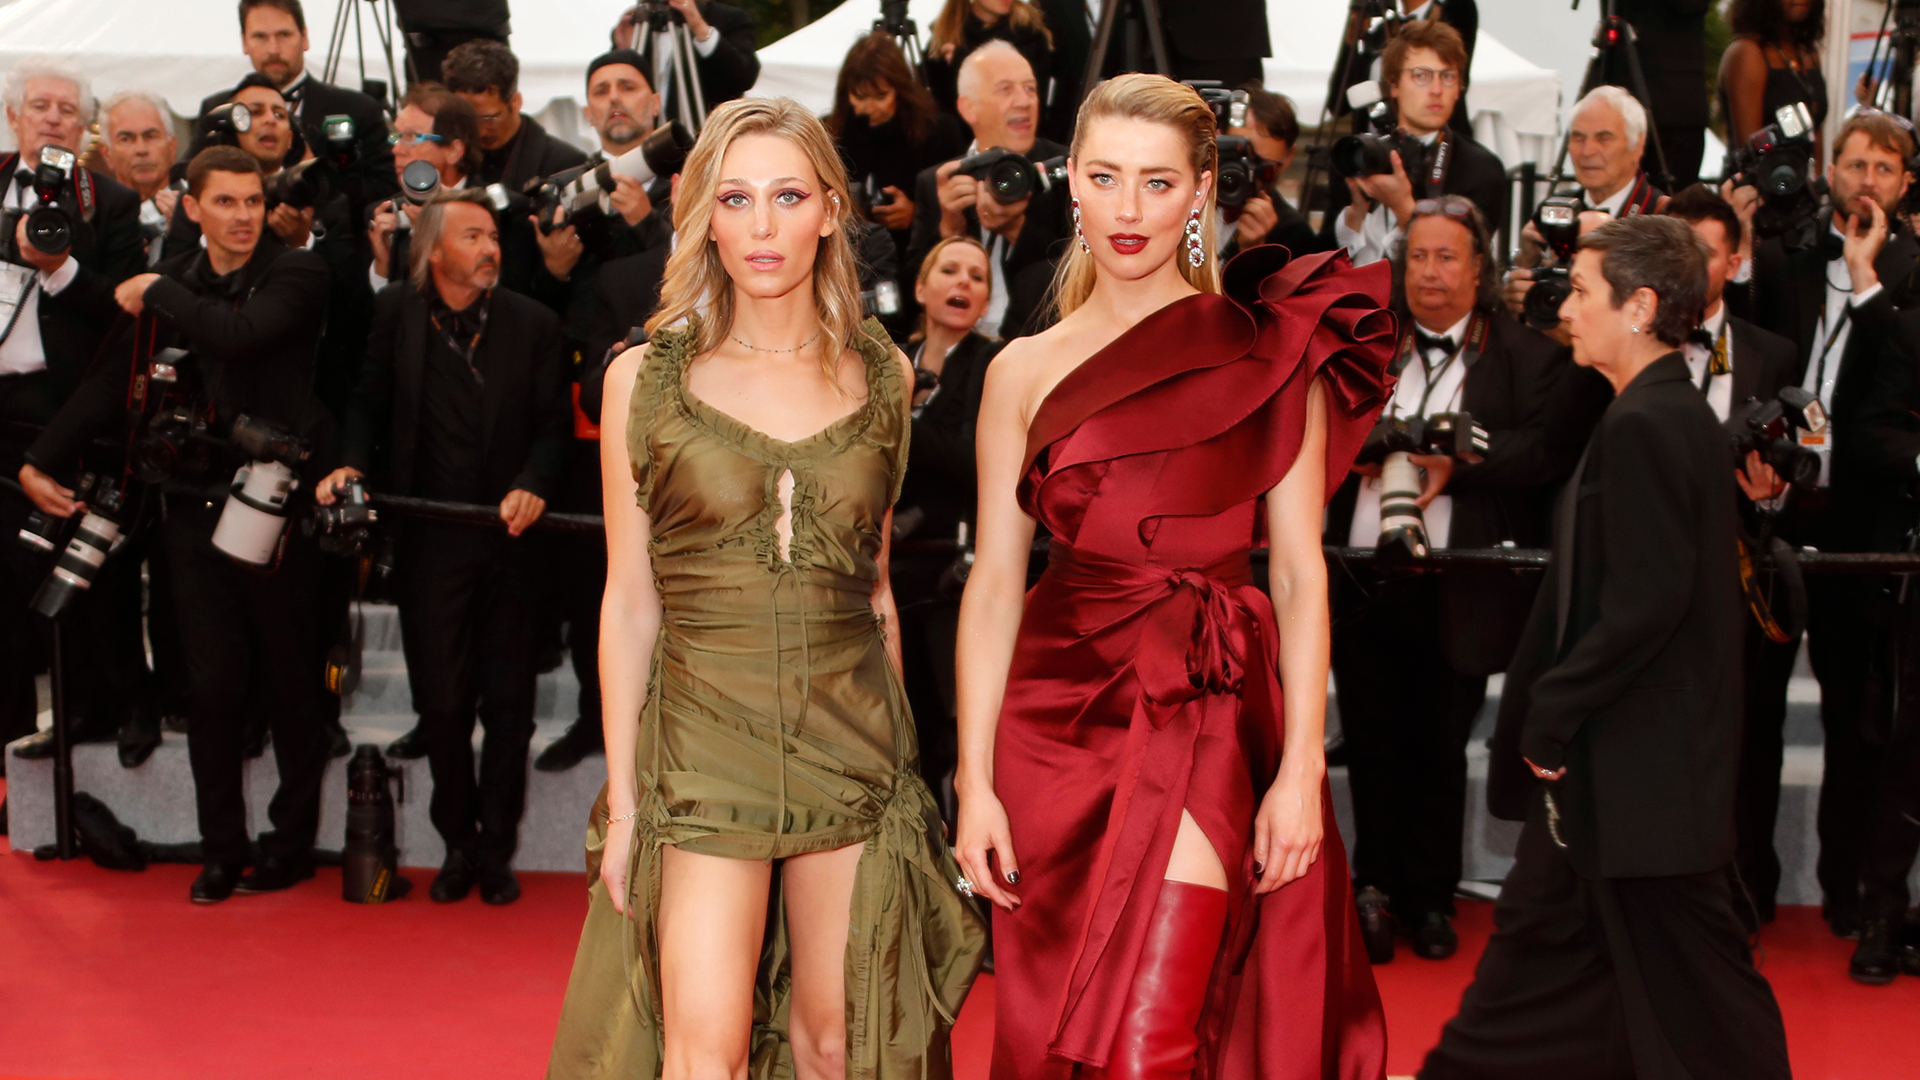 I Attended Cannes Film Festival with Amber Heard & Represented Transgender Women Everywhere